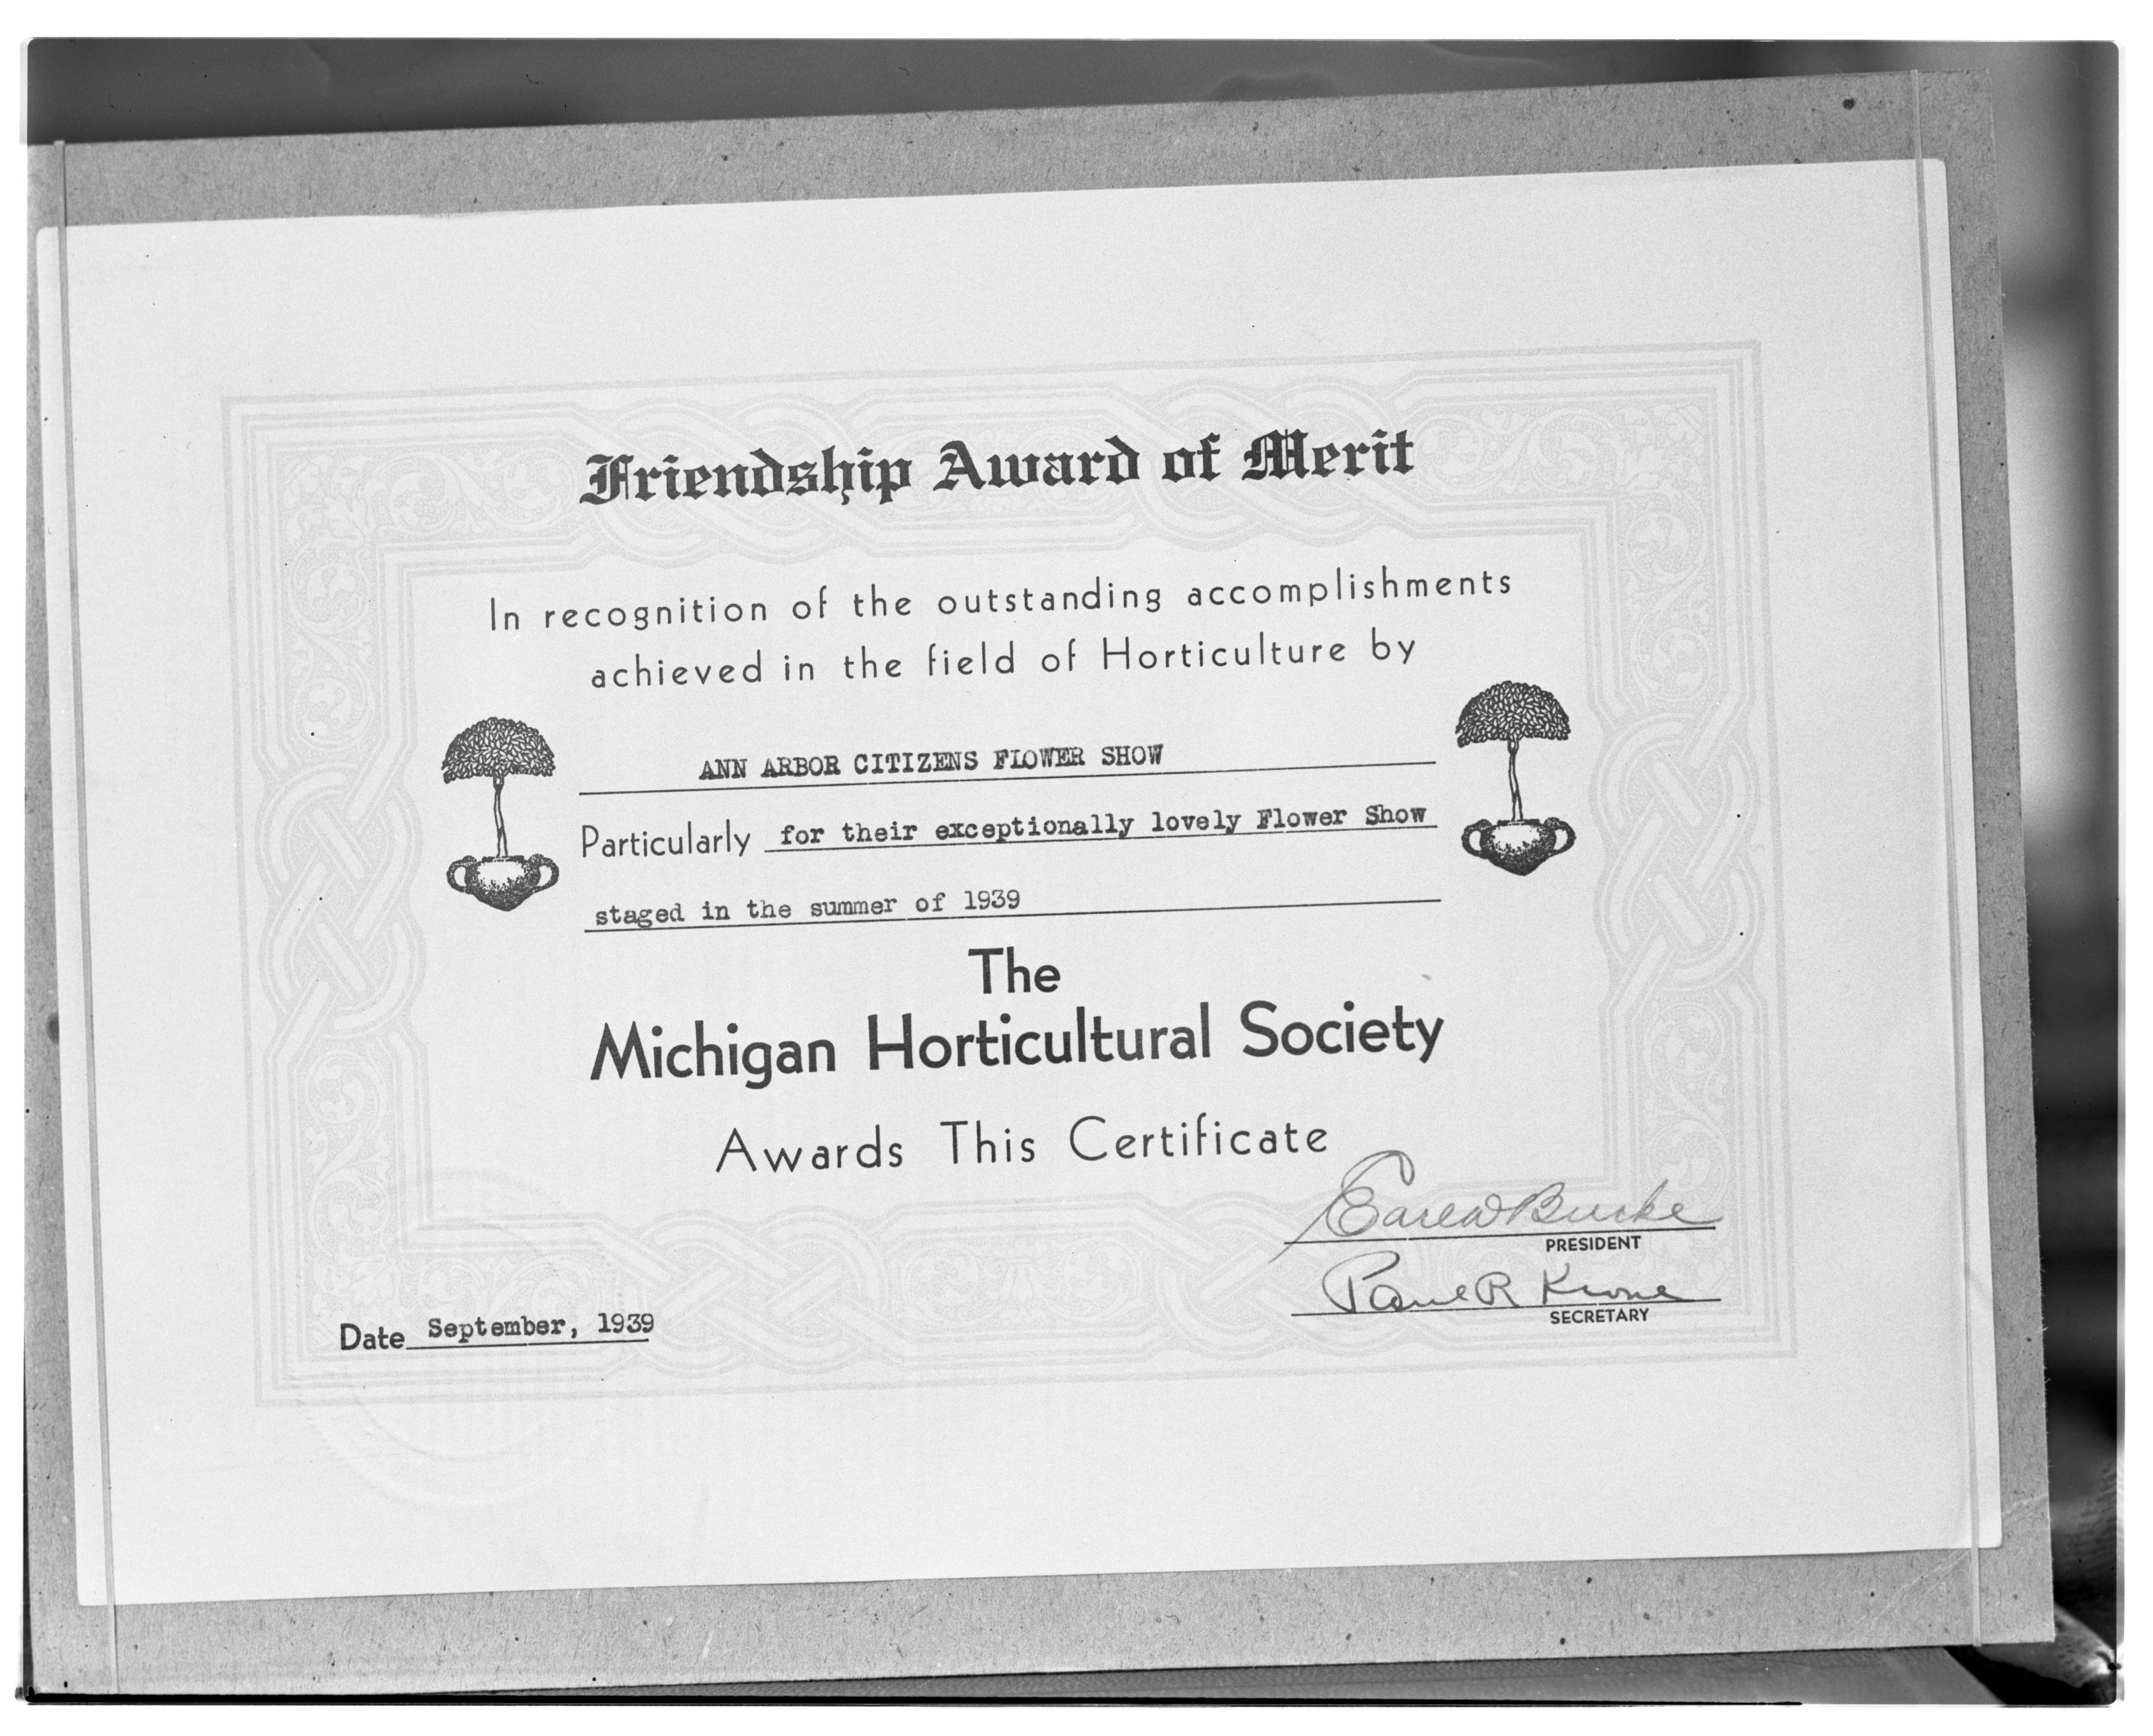 Michigan Horticulture Society Friendship Award Certificate to the Ann Arbor Flower Show image